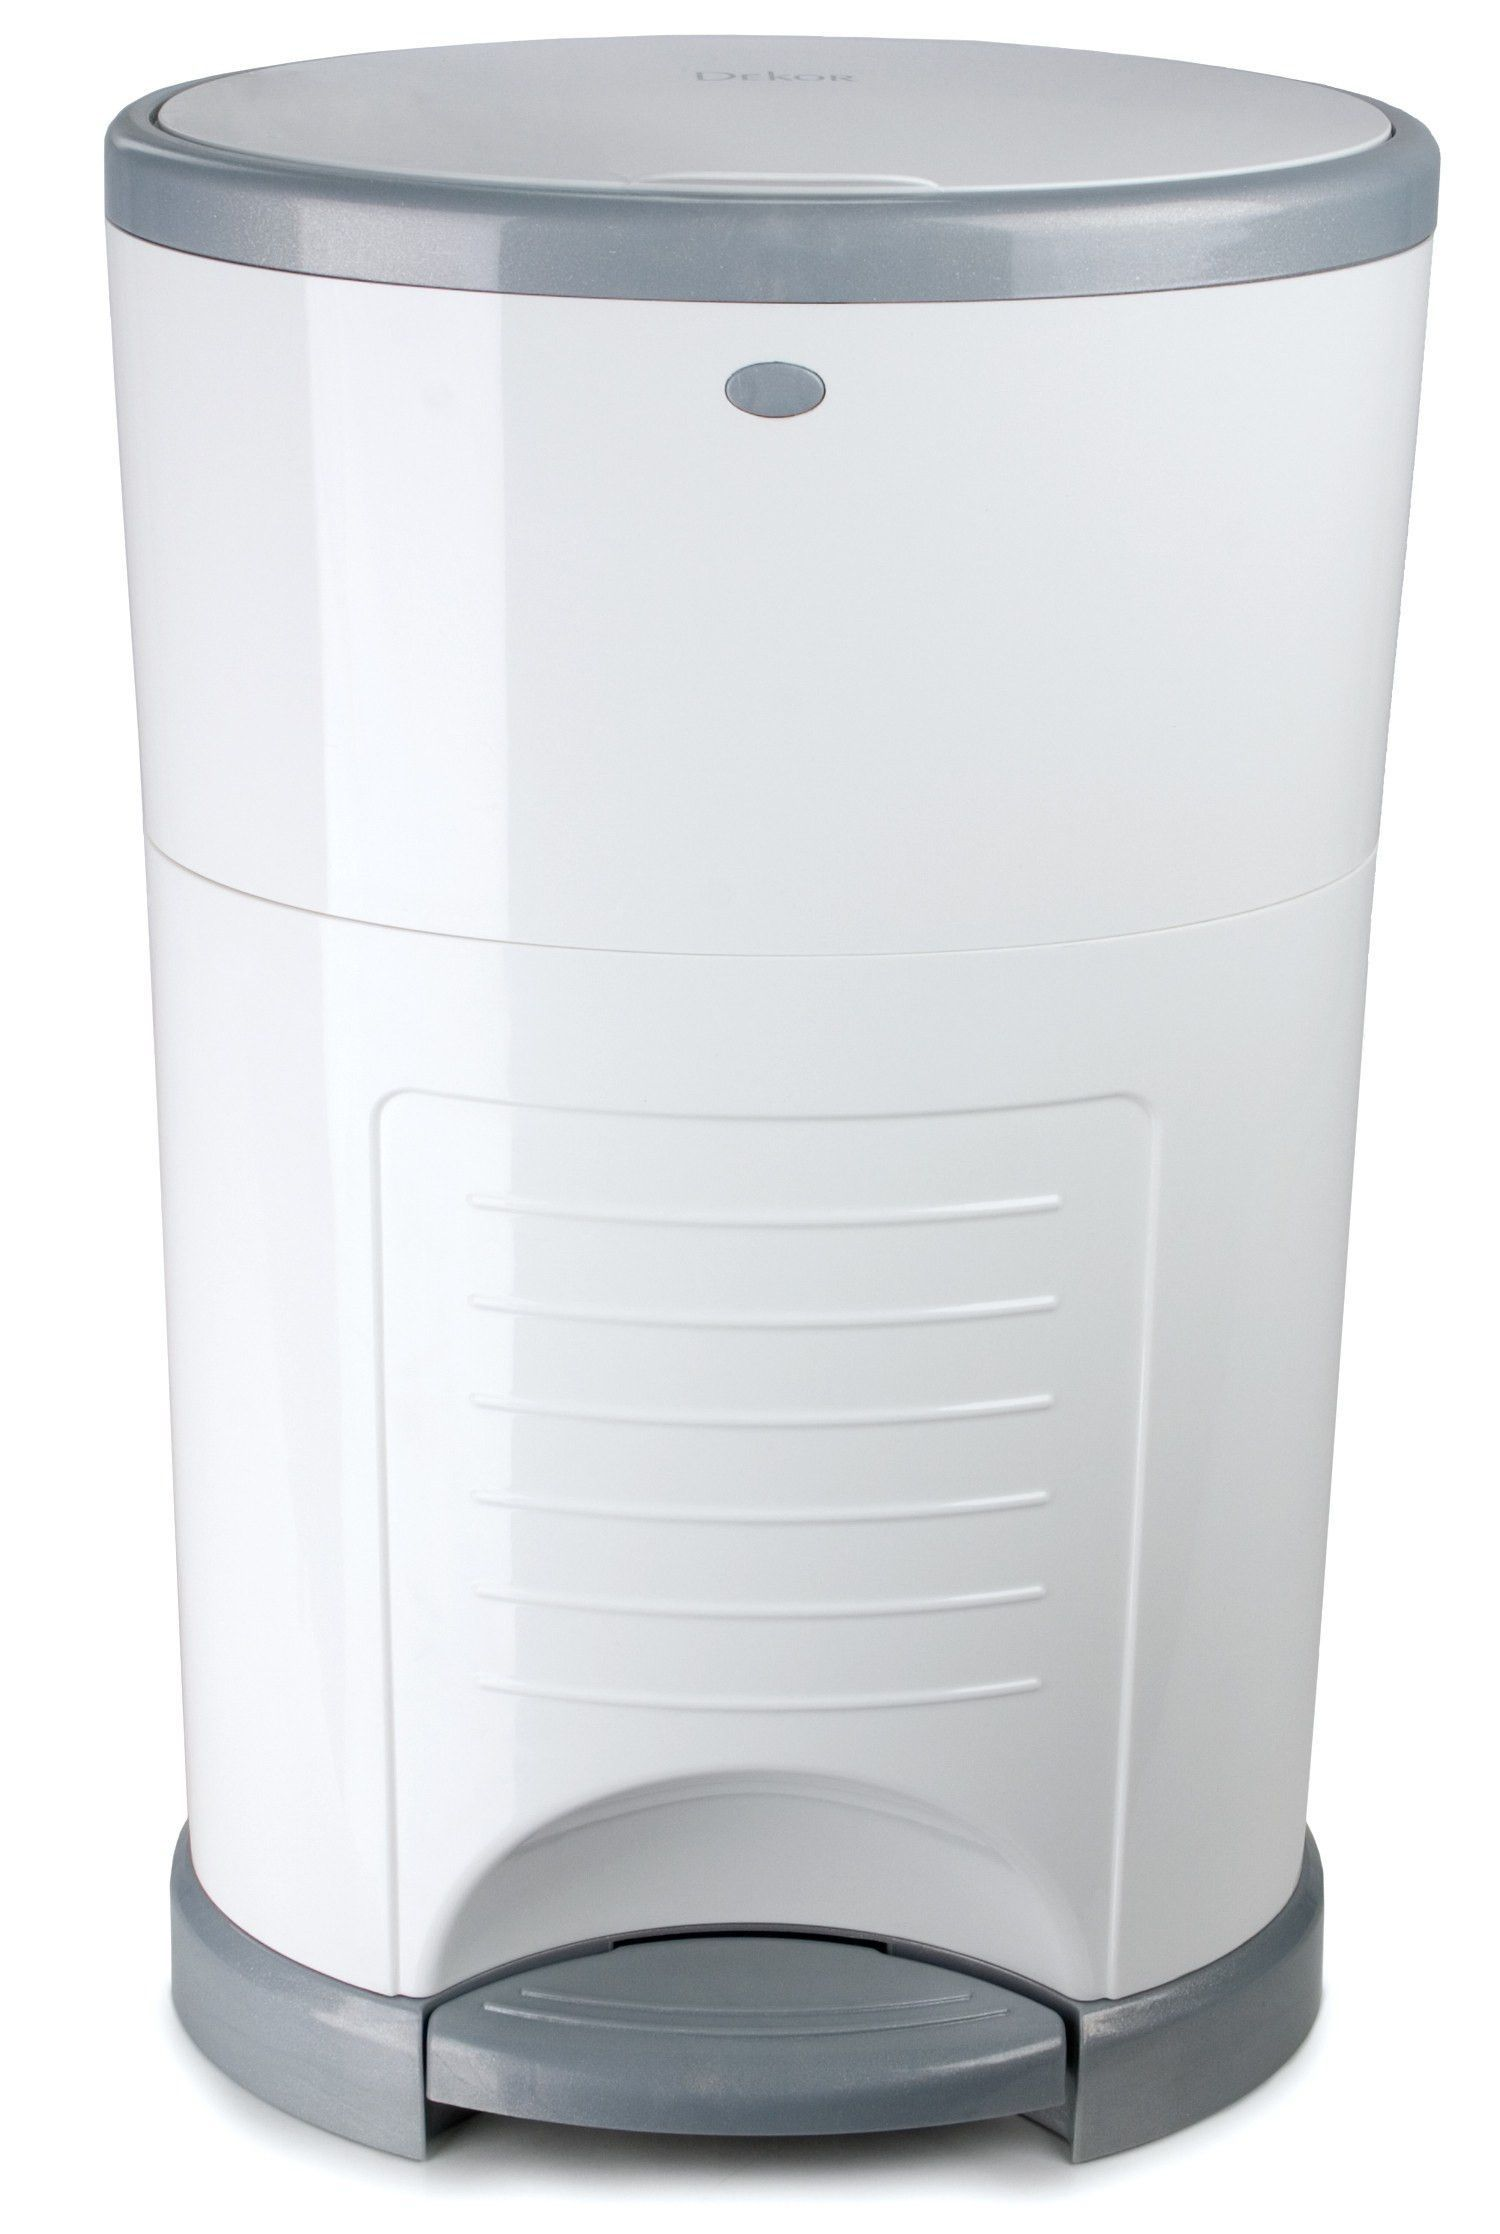 Diaper Dekor Classic Diaper Pail | Diaper pail, Disposable